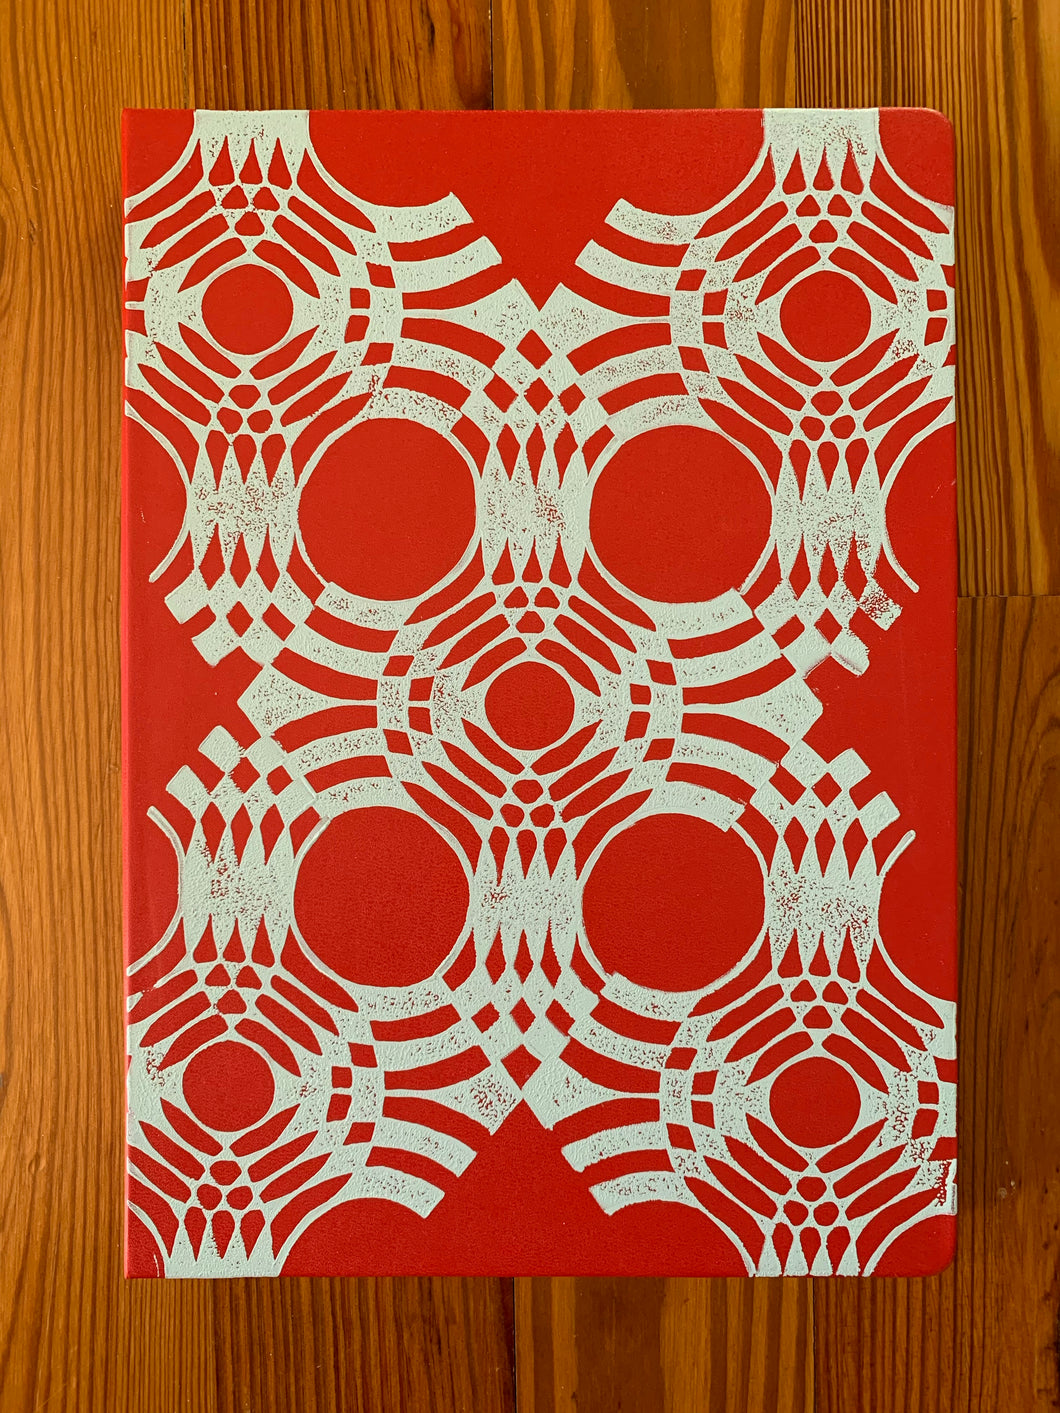 A red Moleskine sketchbook hand block printed in a white geometric pattern.